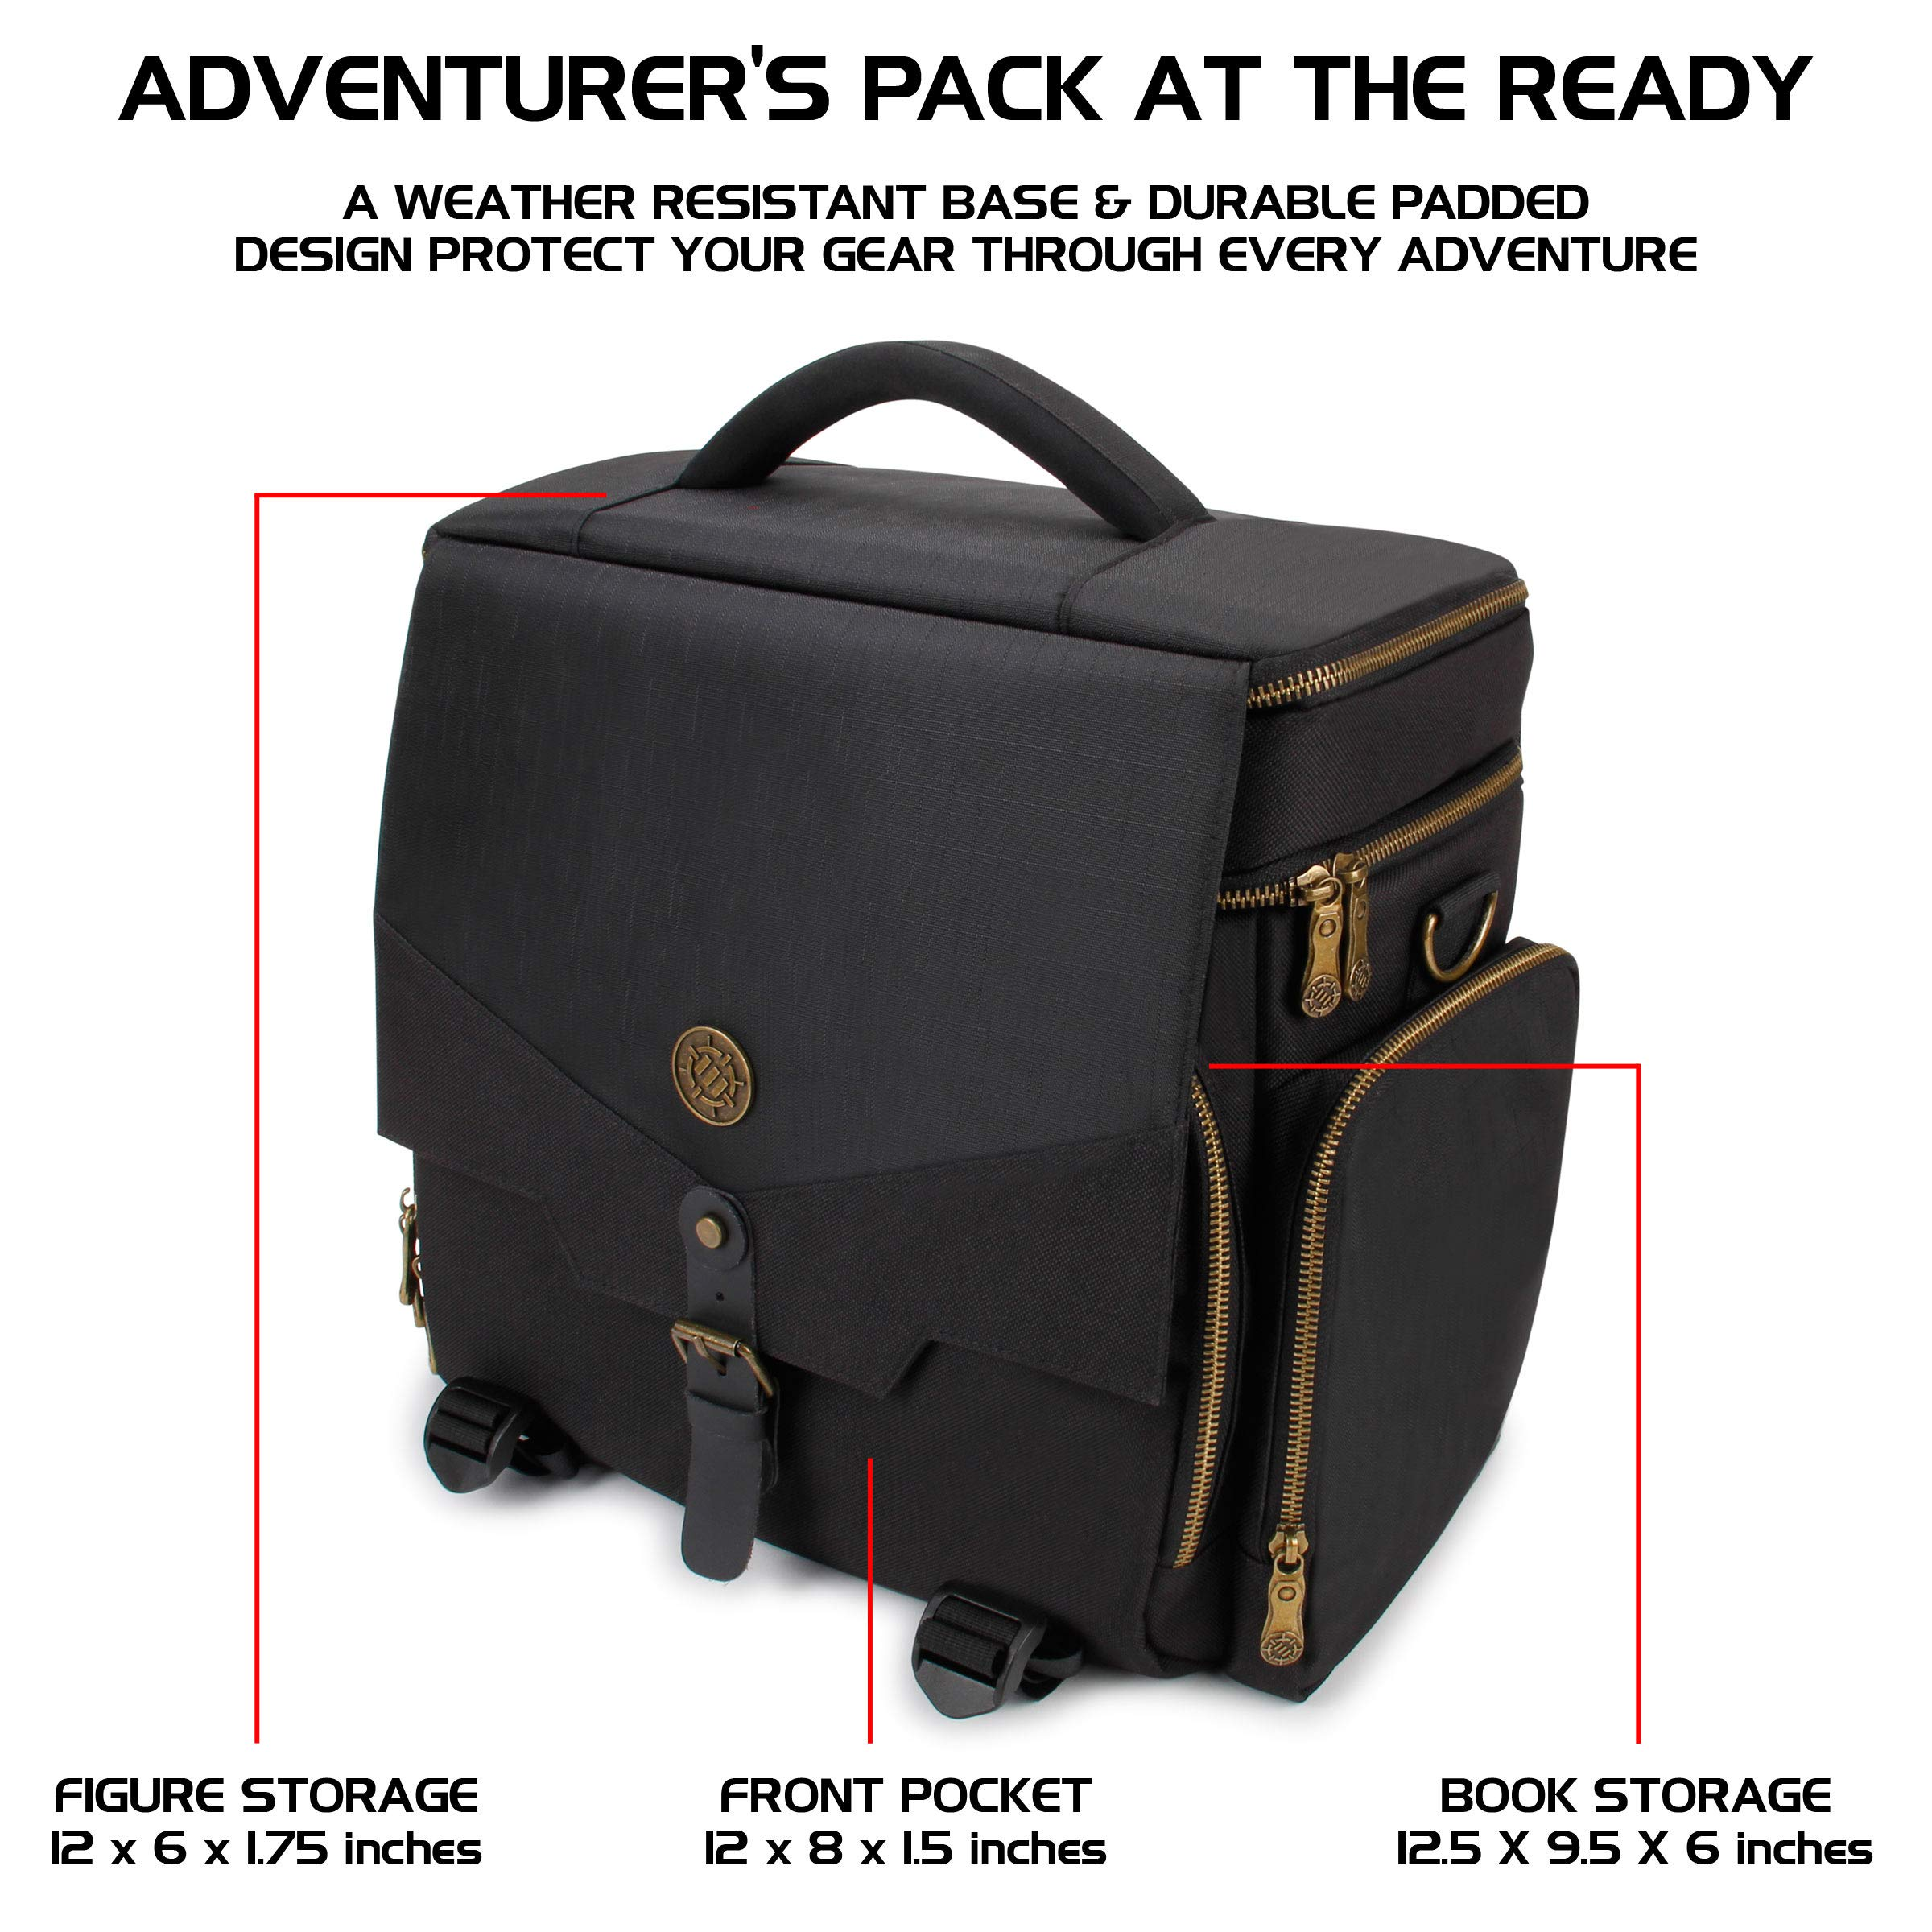 ENHANCE Tabletop RPG Adventurer's Bag - Dungeons & Dragons Travel Bag fits Player's Handbook, Dungeon Master's Guide & More - Padded Mini Figure Storage, Dice & Token Pockets (Fits 4-8 Books) by ENHANCE (Image #2)